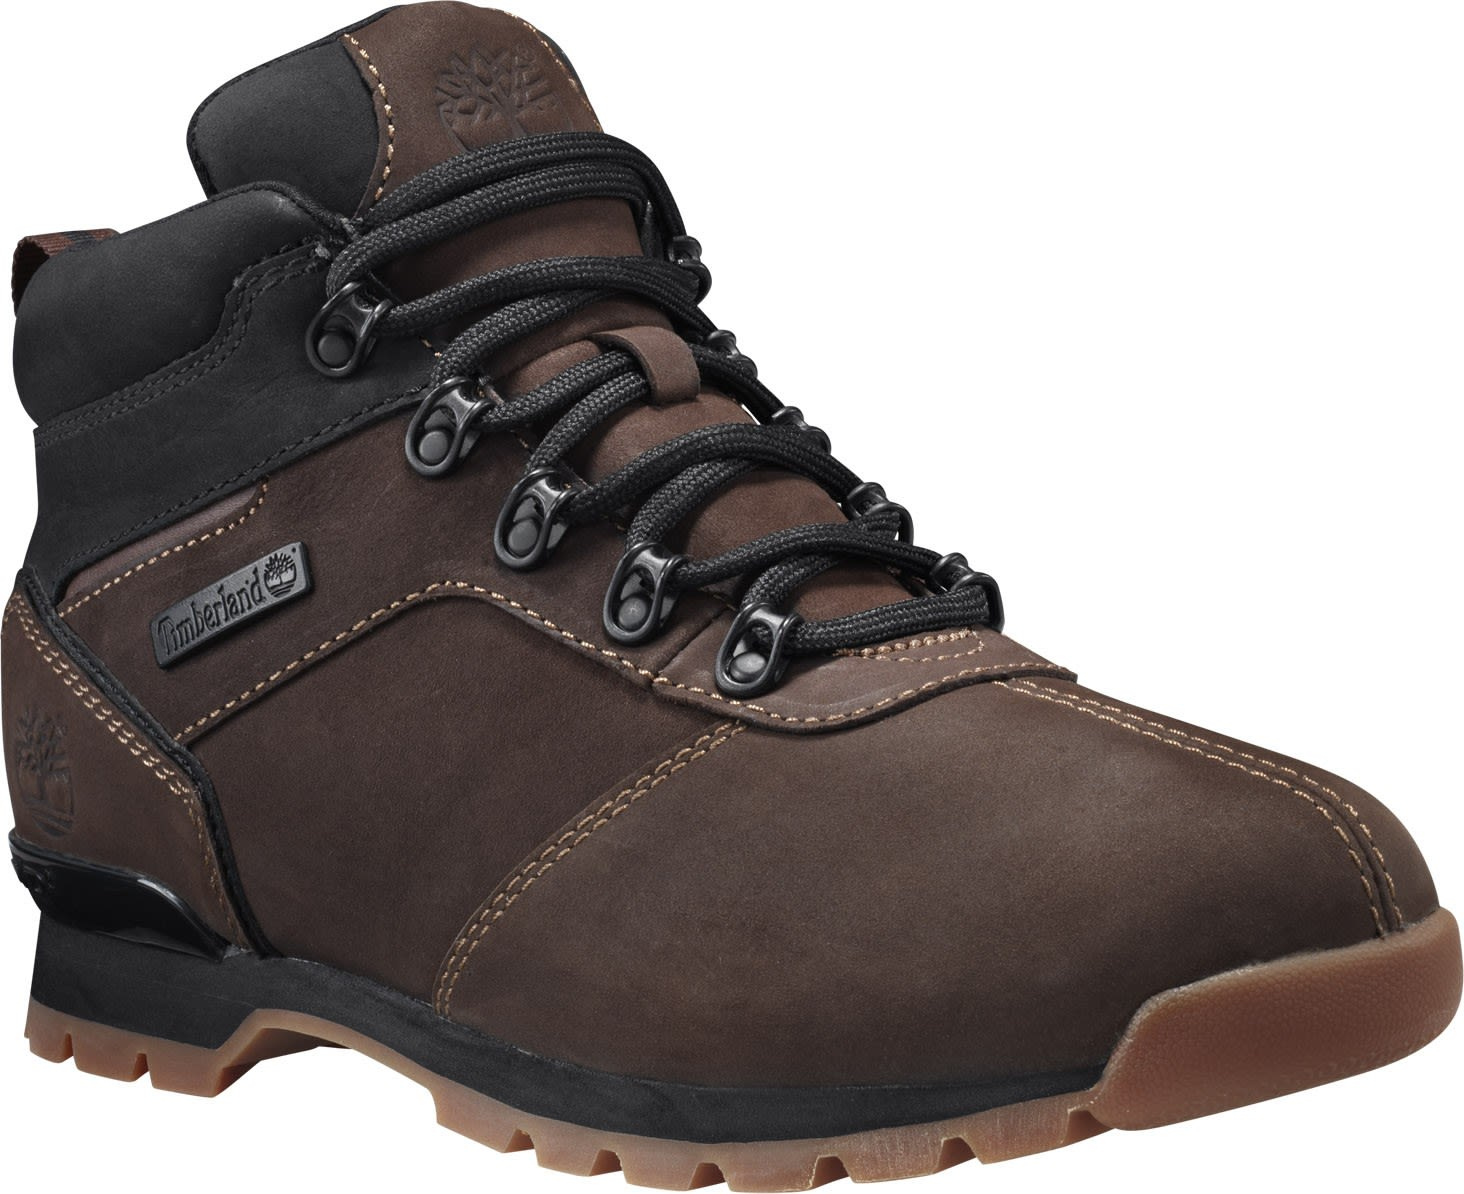 Timberland Splitrock 2 Hiker Braun, Male EU 46 -Farbe Brown Naturebuck Nubuck, 4